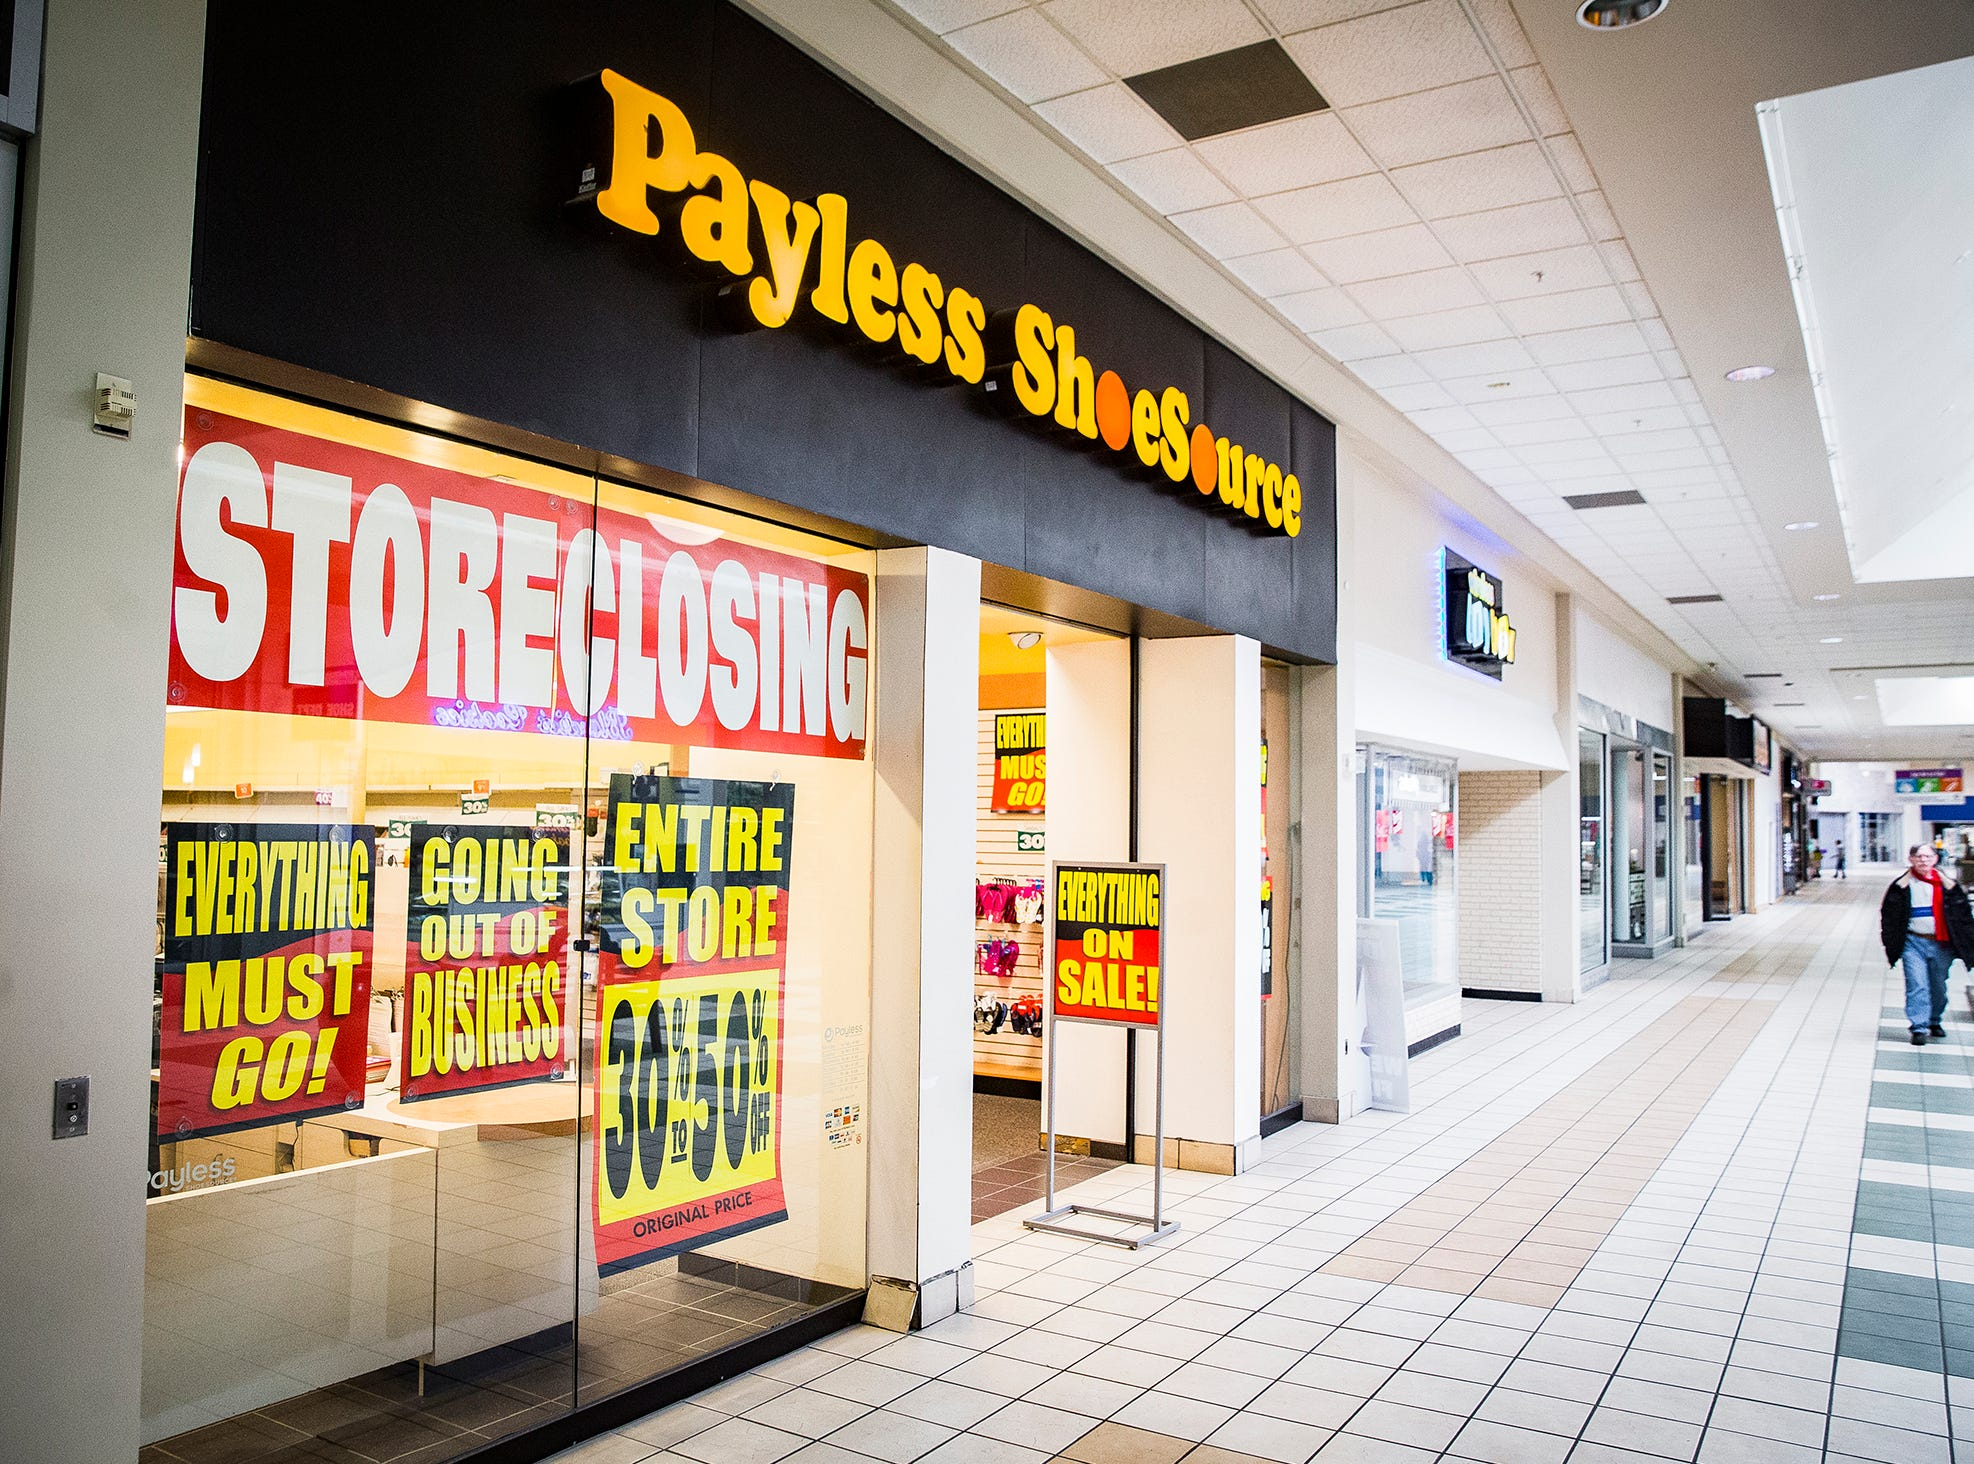 Payless Shoe Store holds a store closing sale at the Muncie Mall.